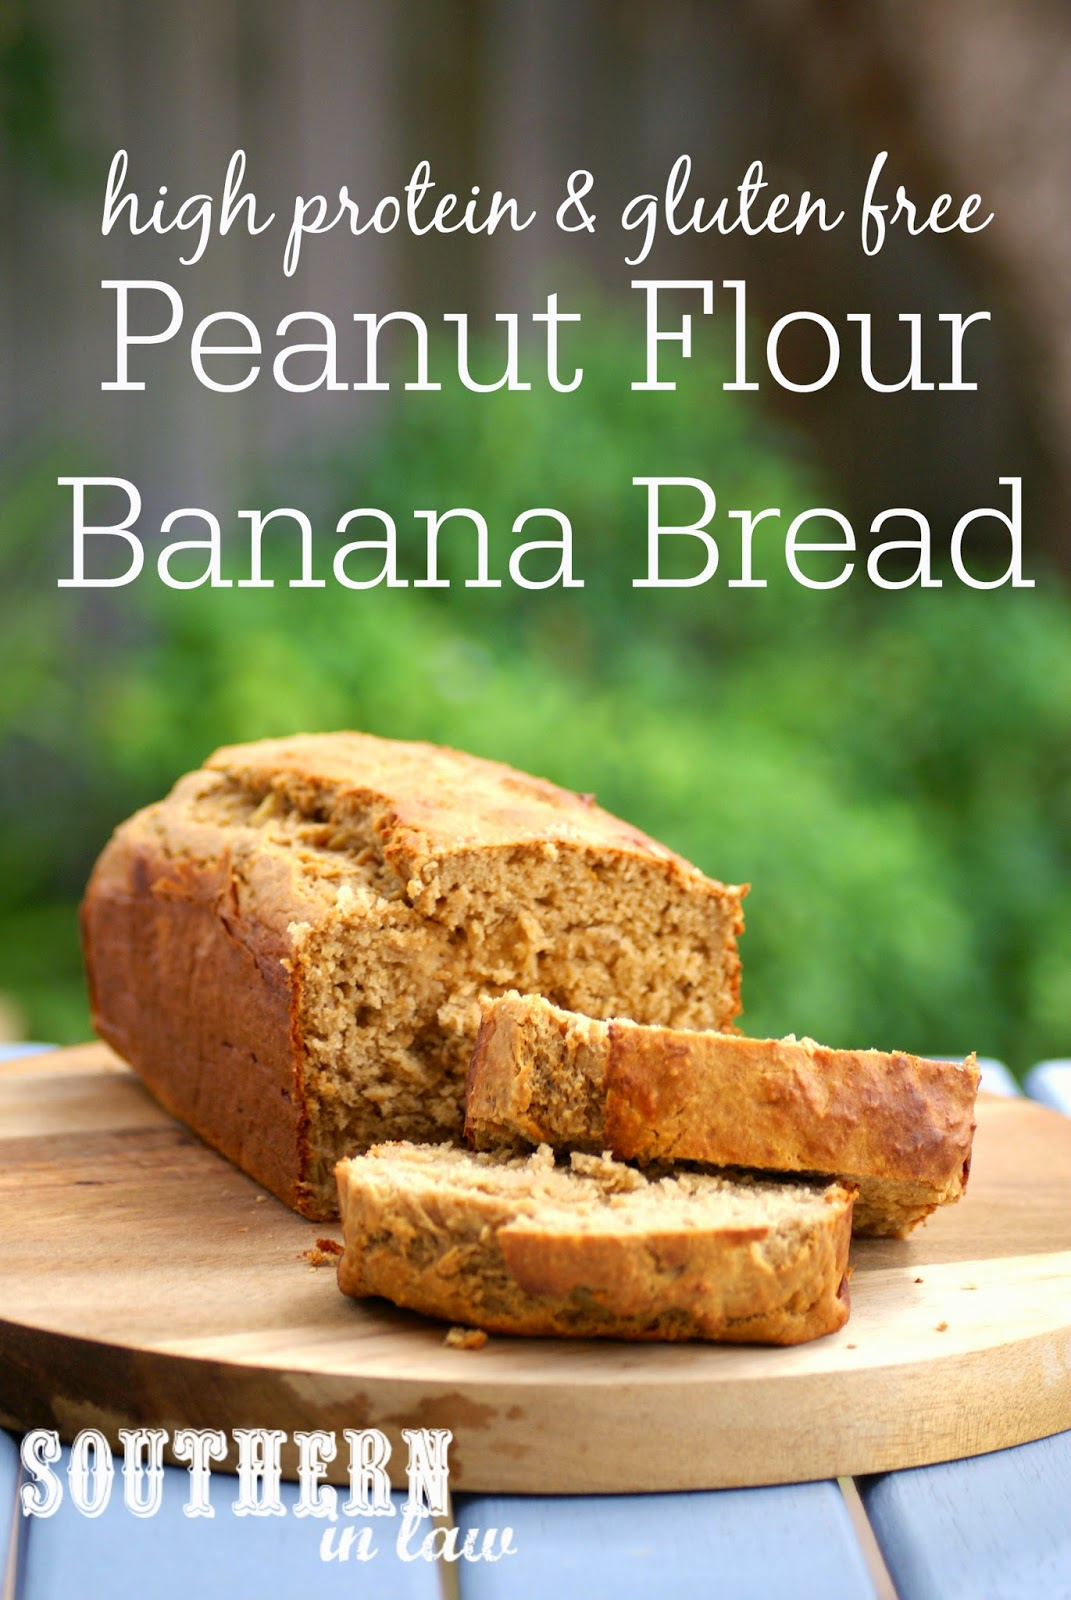 Healthy High Protein Peanut Flour Banana Bread Recipe - low fat, gluten free, healthy, high protein, sugar free, freezable recipe, freezer recipe